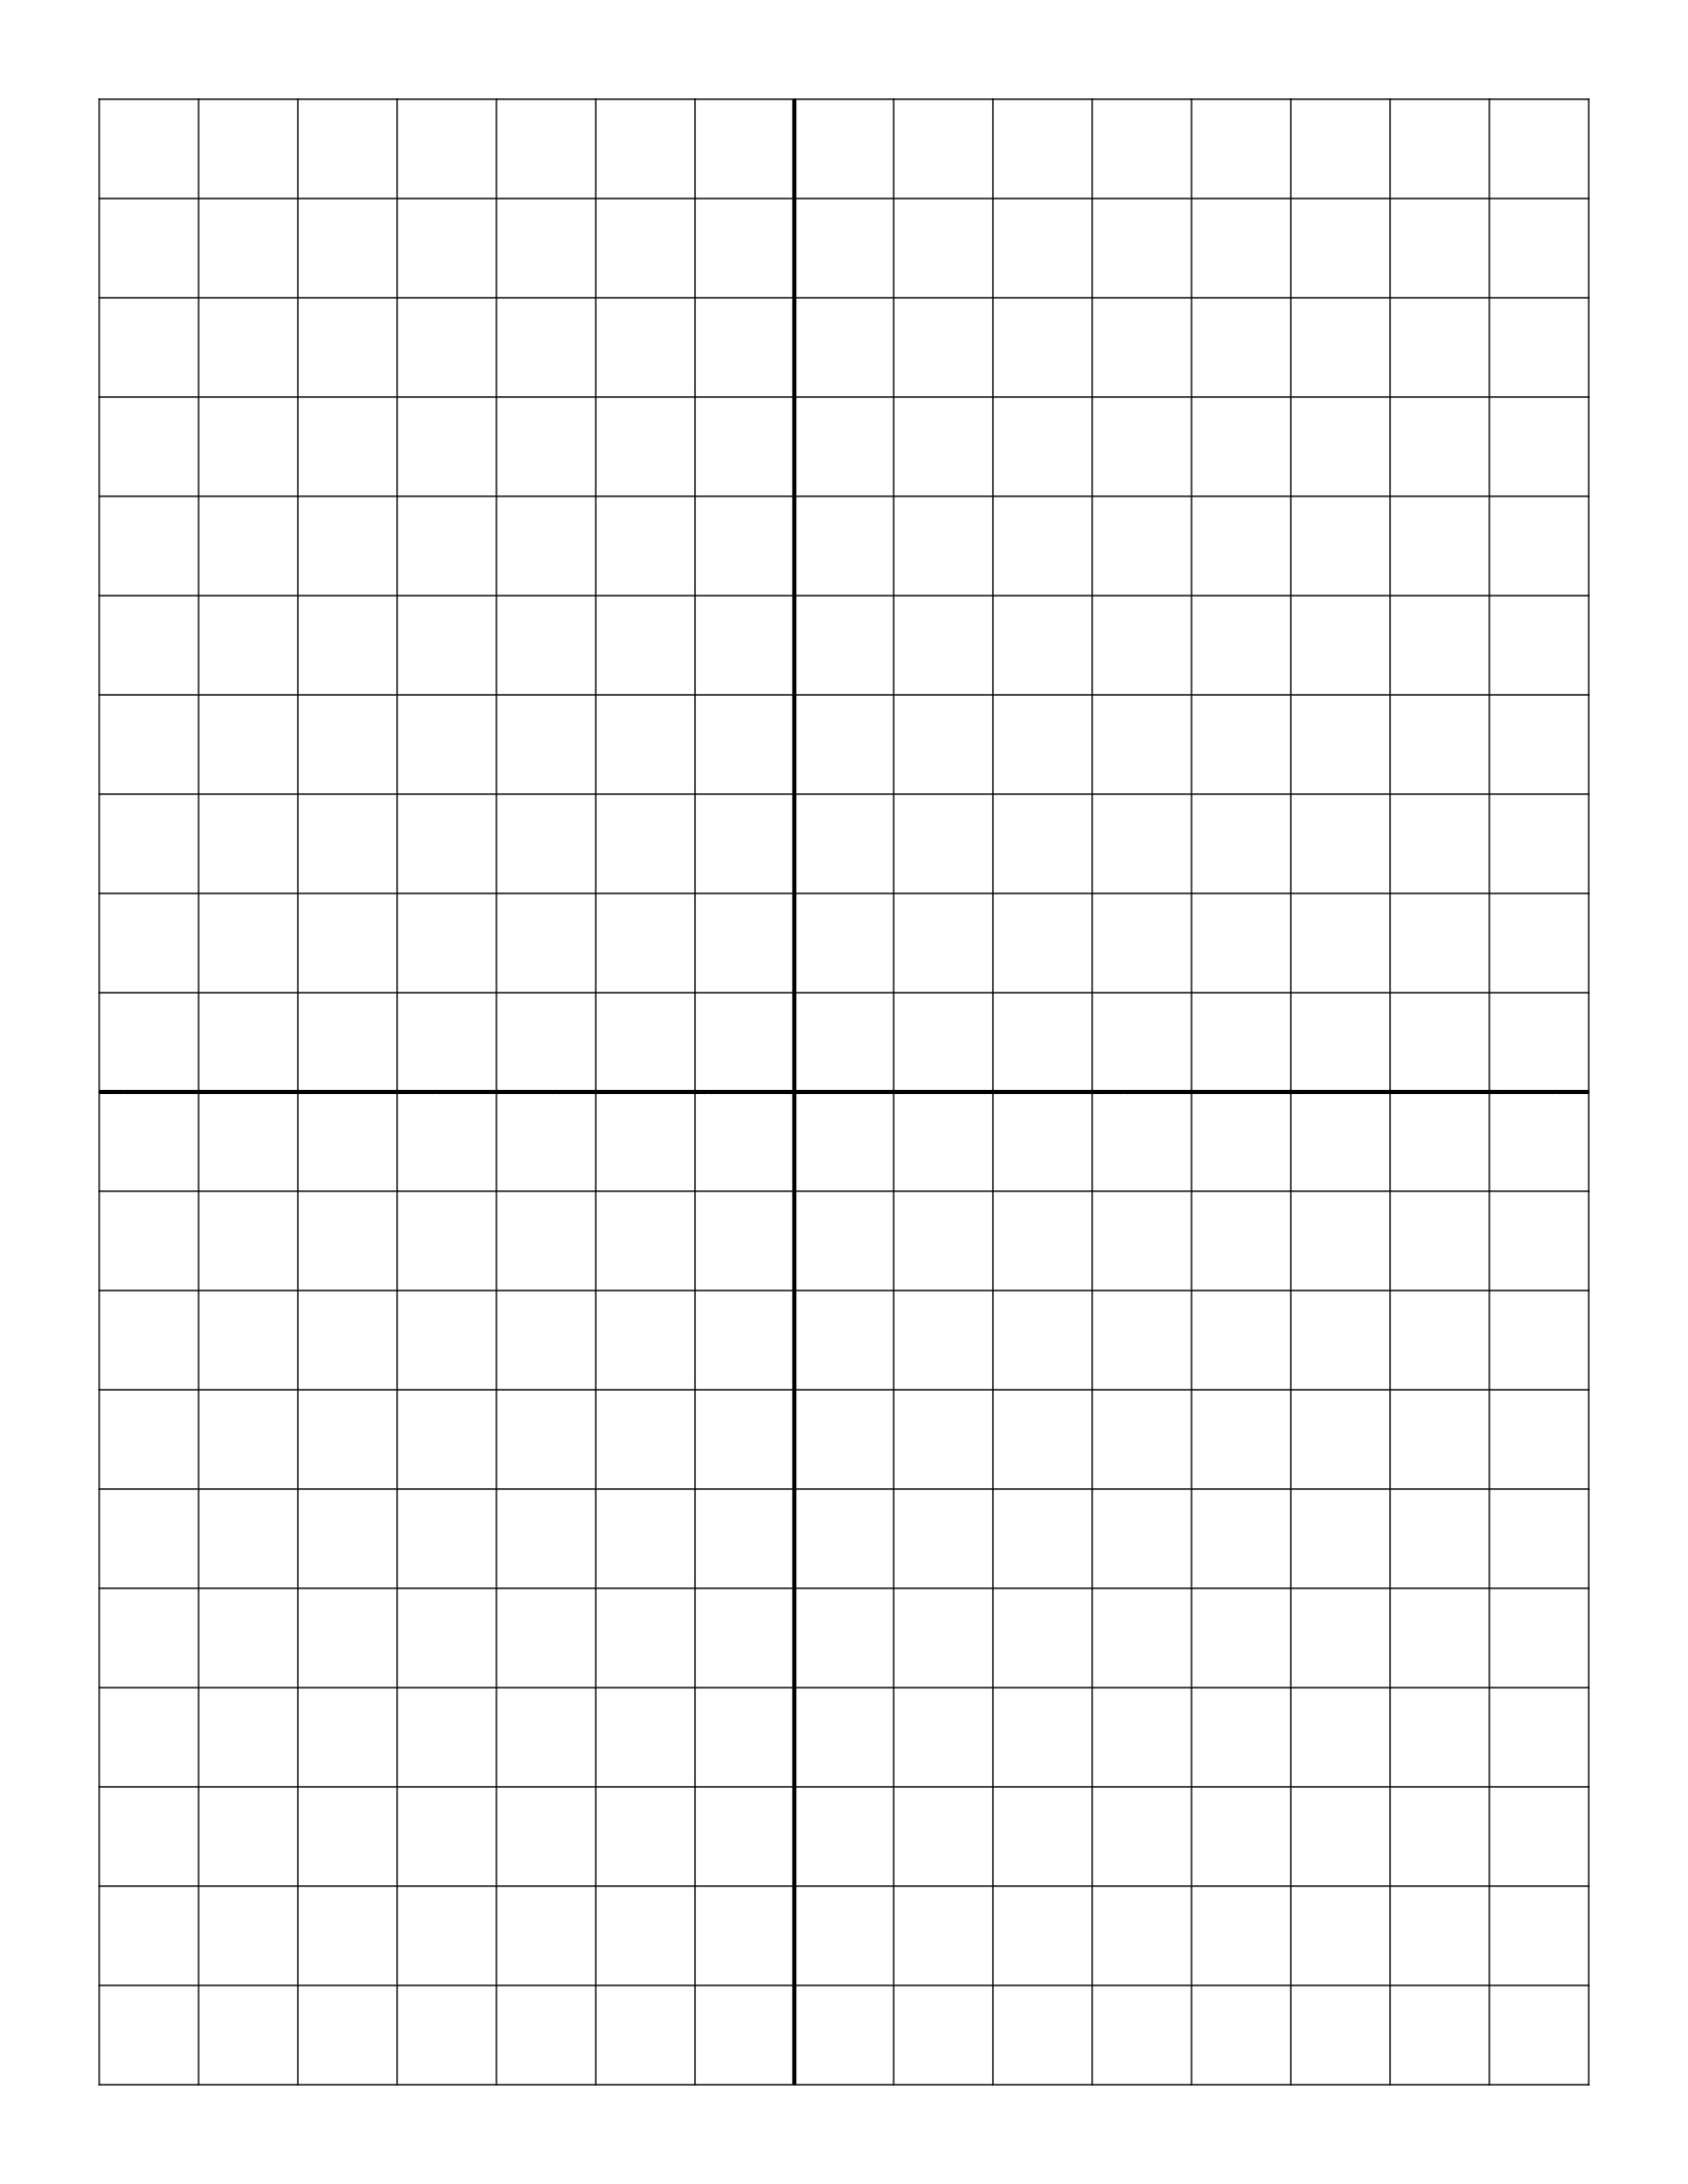 Free Online Graph Paper / Plain - Free Printable Graph Paper With Numbers